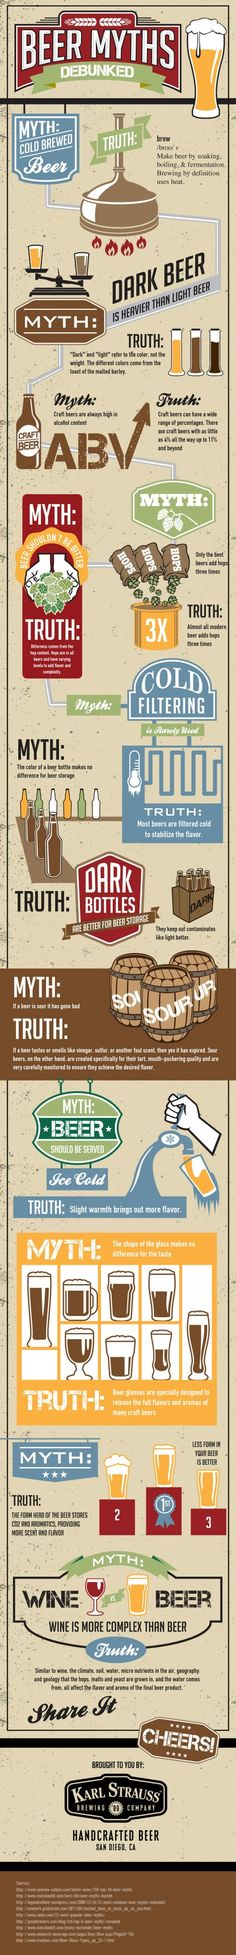 Beer Myths